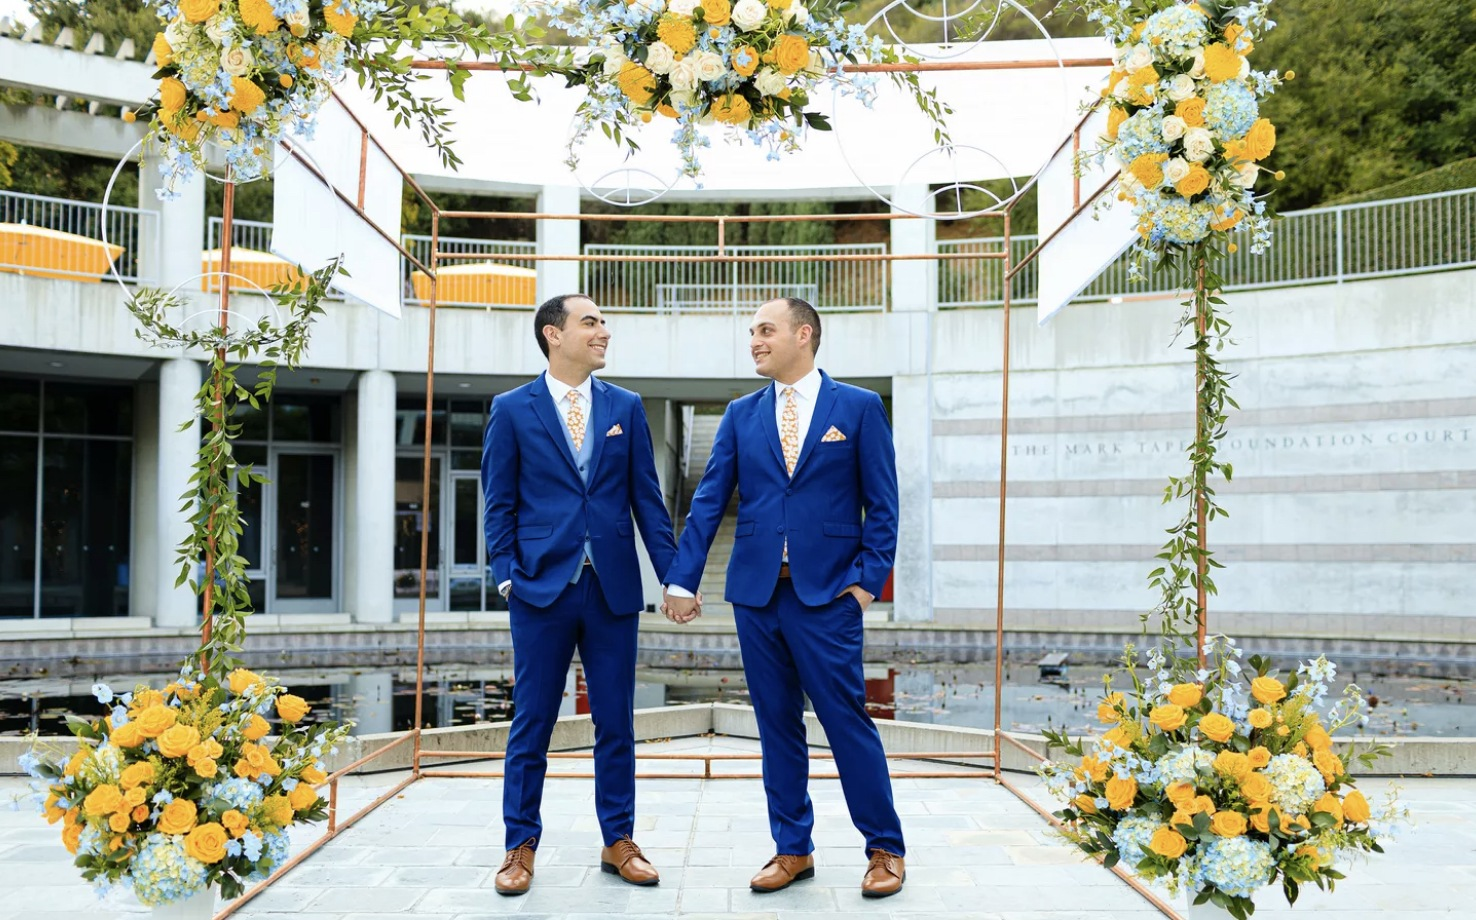 Grooms Married under Yellow and Blue Chuppah